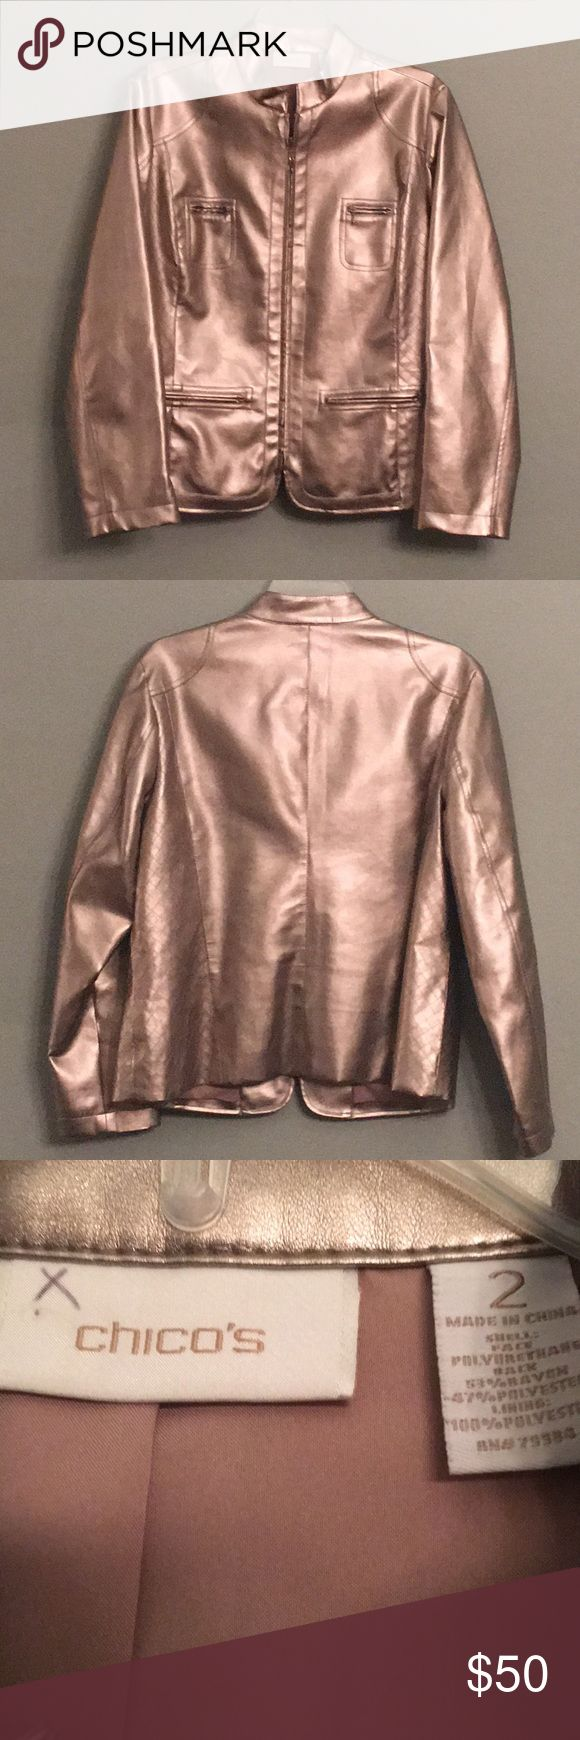 😍Metallic Chico's Zip Up Jacket 😍STUNNING!!!😍 This Jacket is absolutely gorgeous!! Taupe Gold metallic with zipper pockets!! Excellent condition inside and out. Fully lined. Guaranteed to turn heads!! This is a Chico's Size 2....not a regular size 2! Fits more like a large. Chico's Jackets & Coats